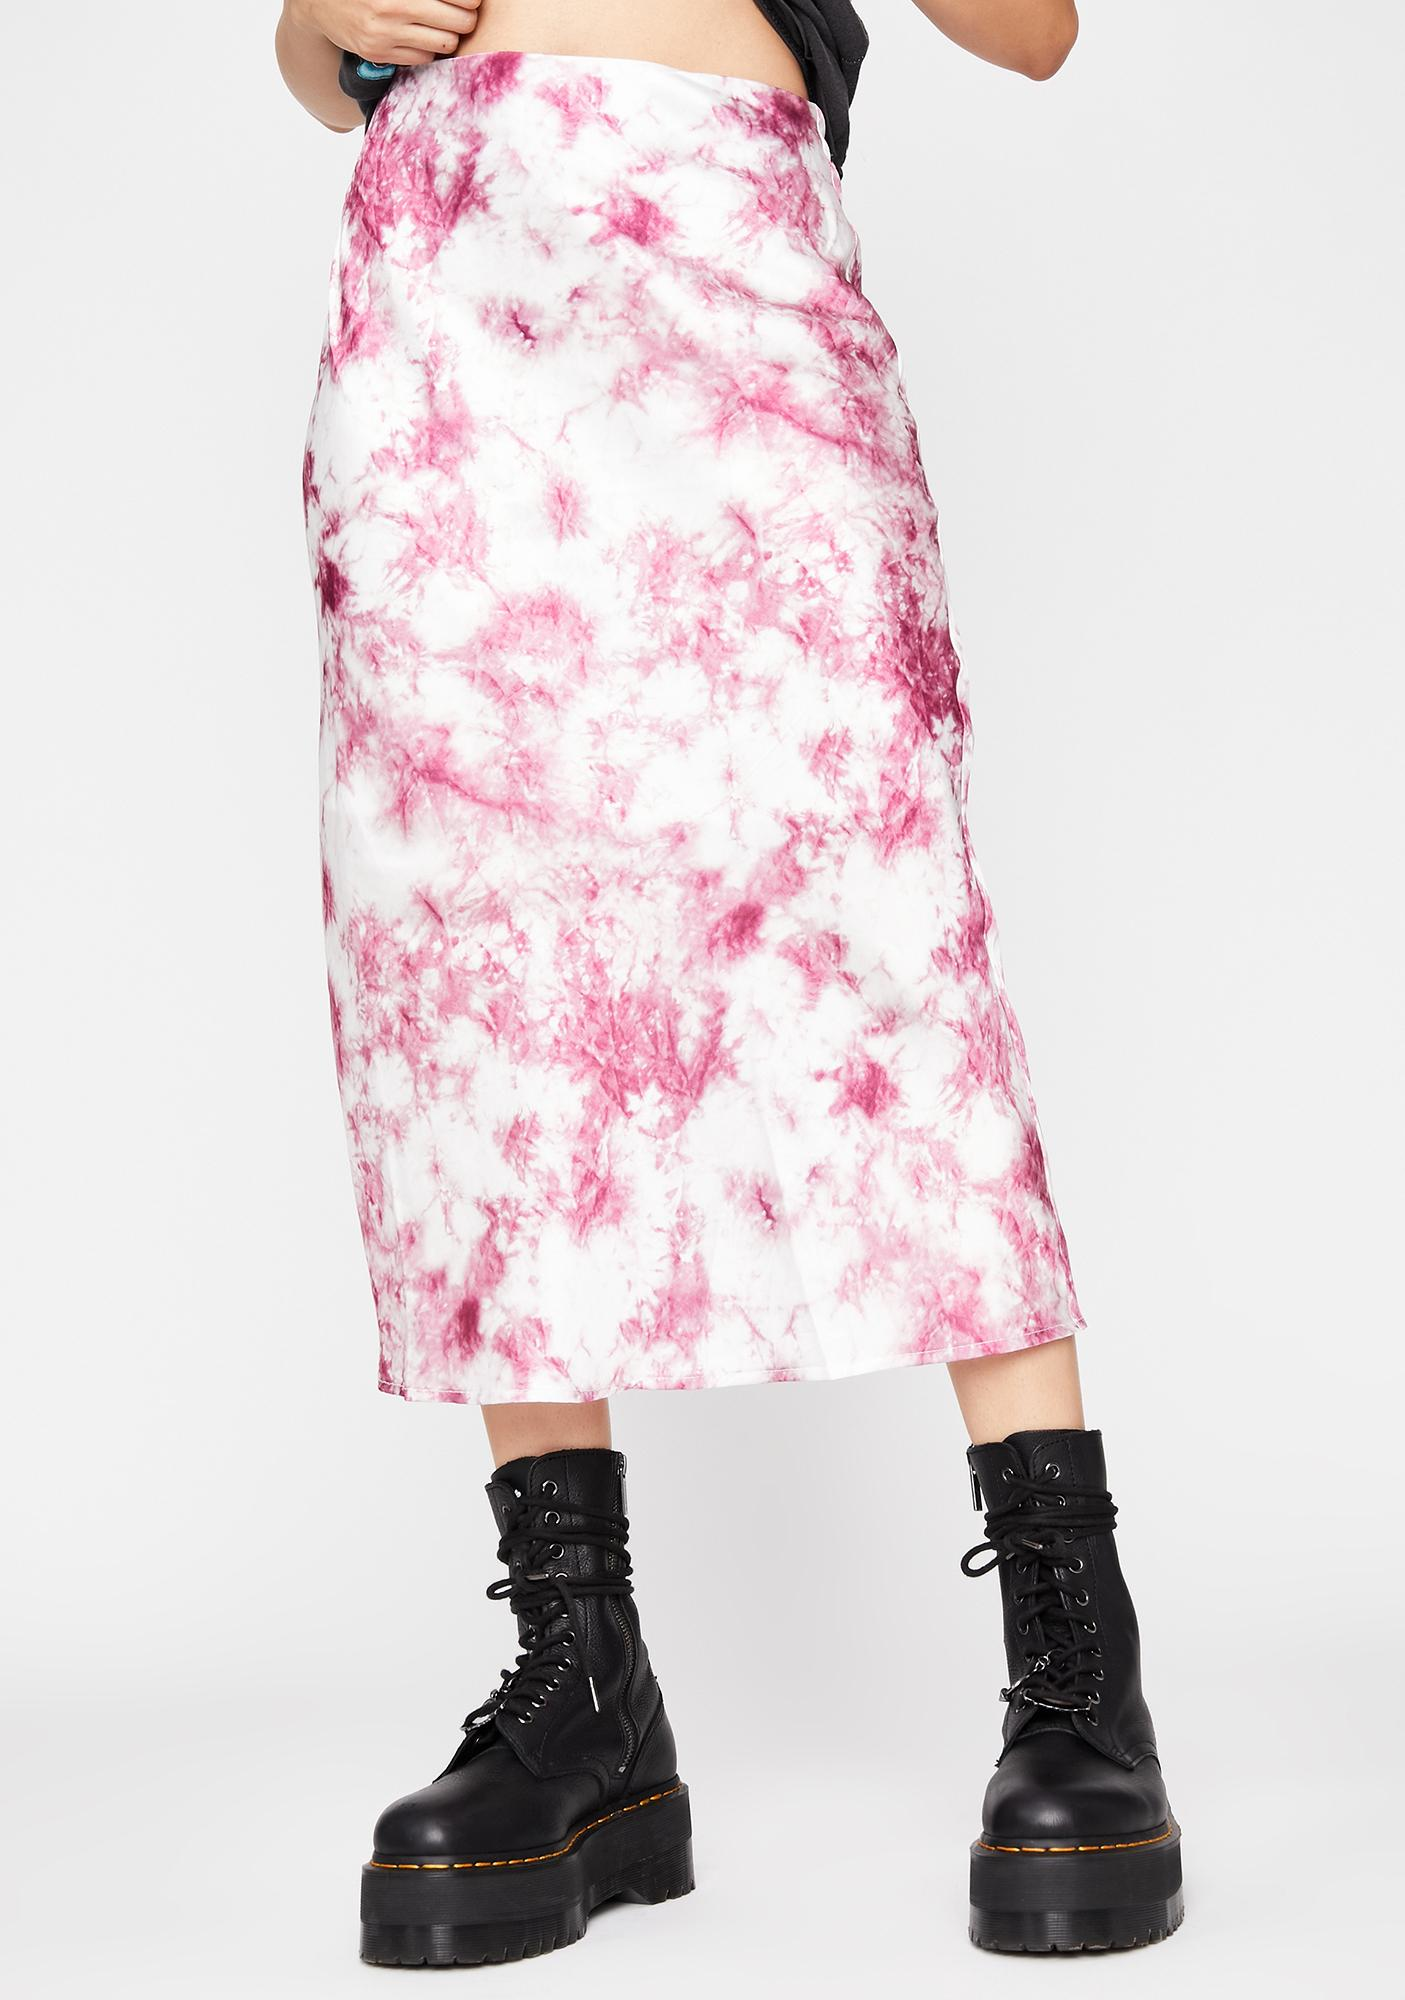 Sweet Cotton Candy Skies Midi Skirt